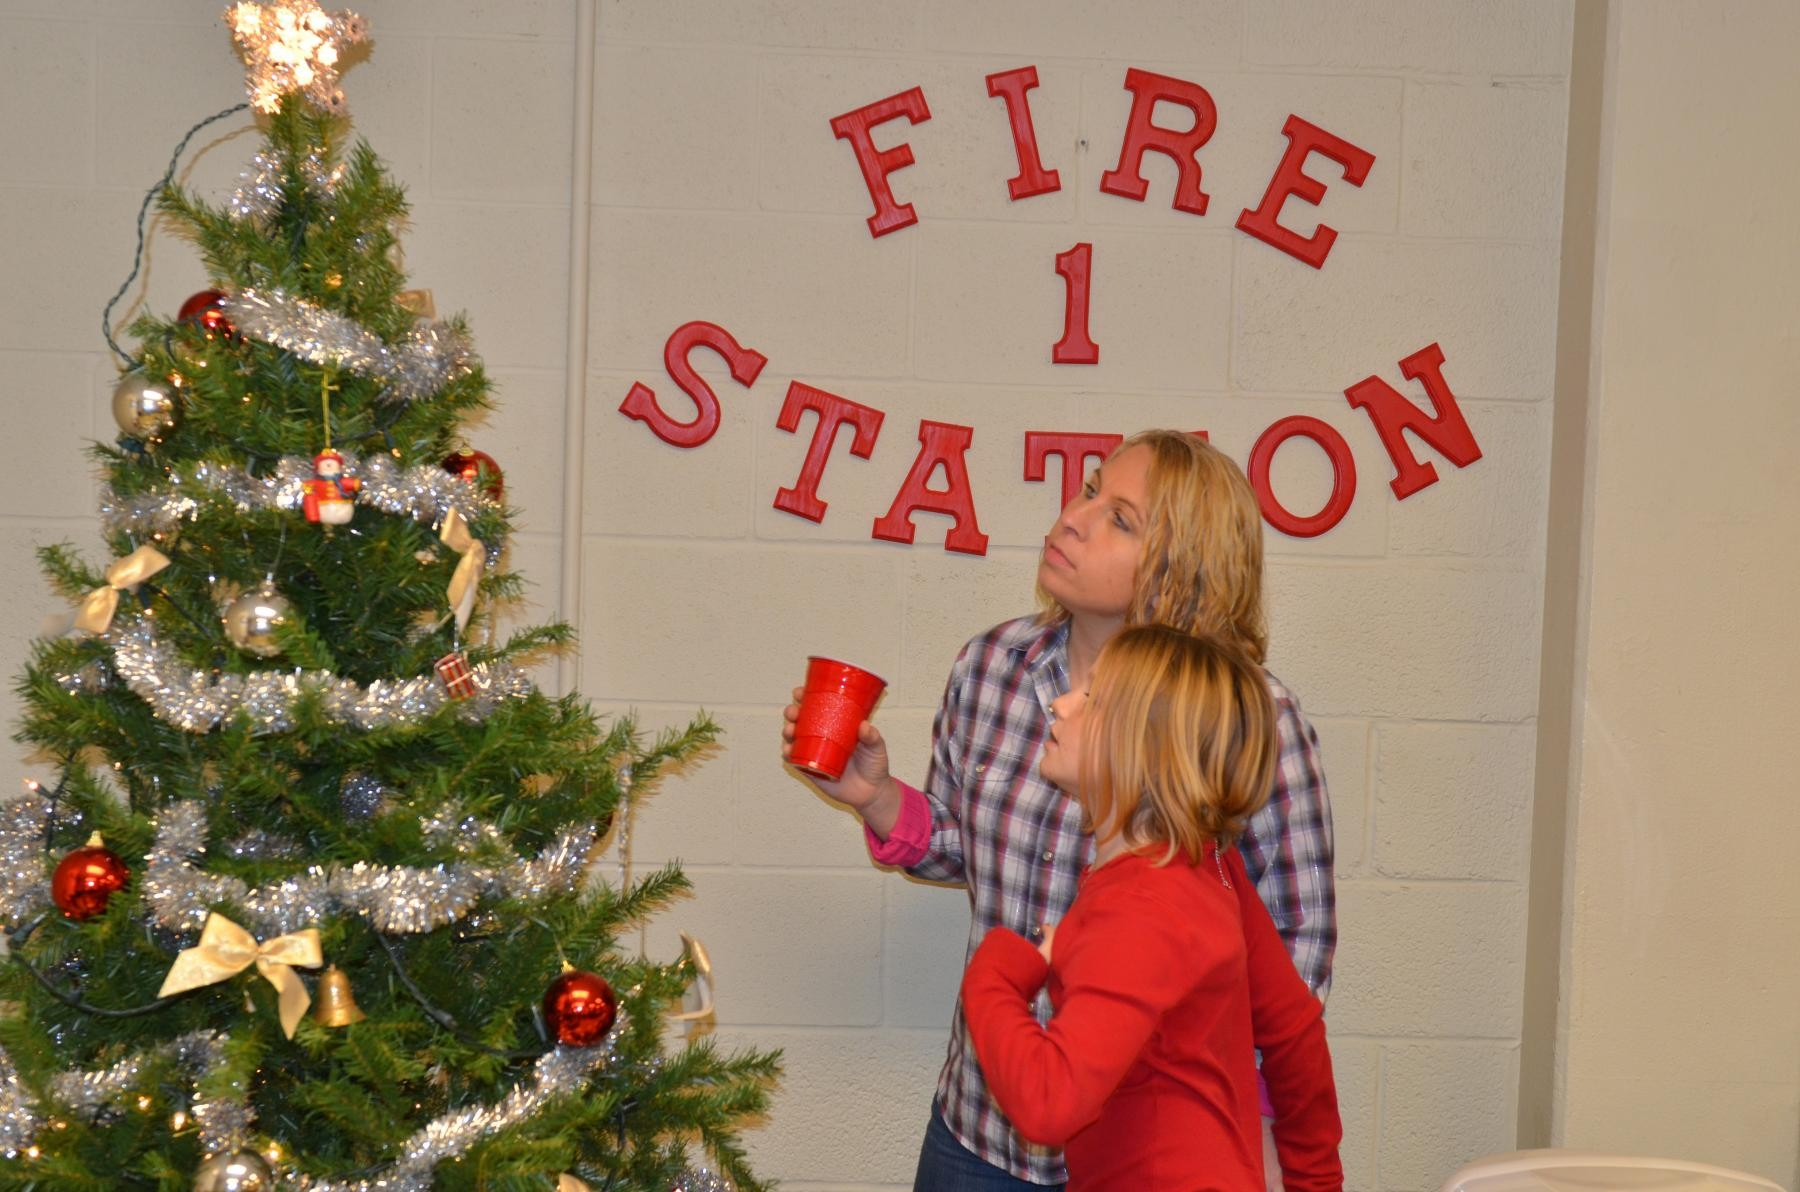 Christmas at the firehouse | Article | The United States Army